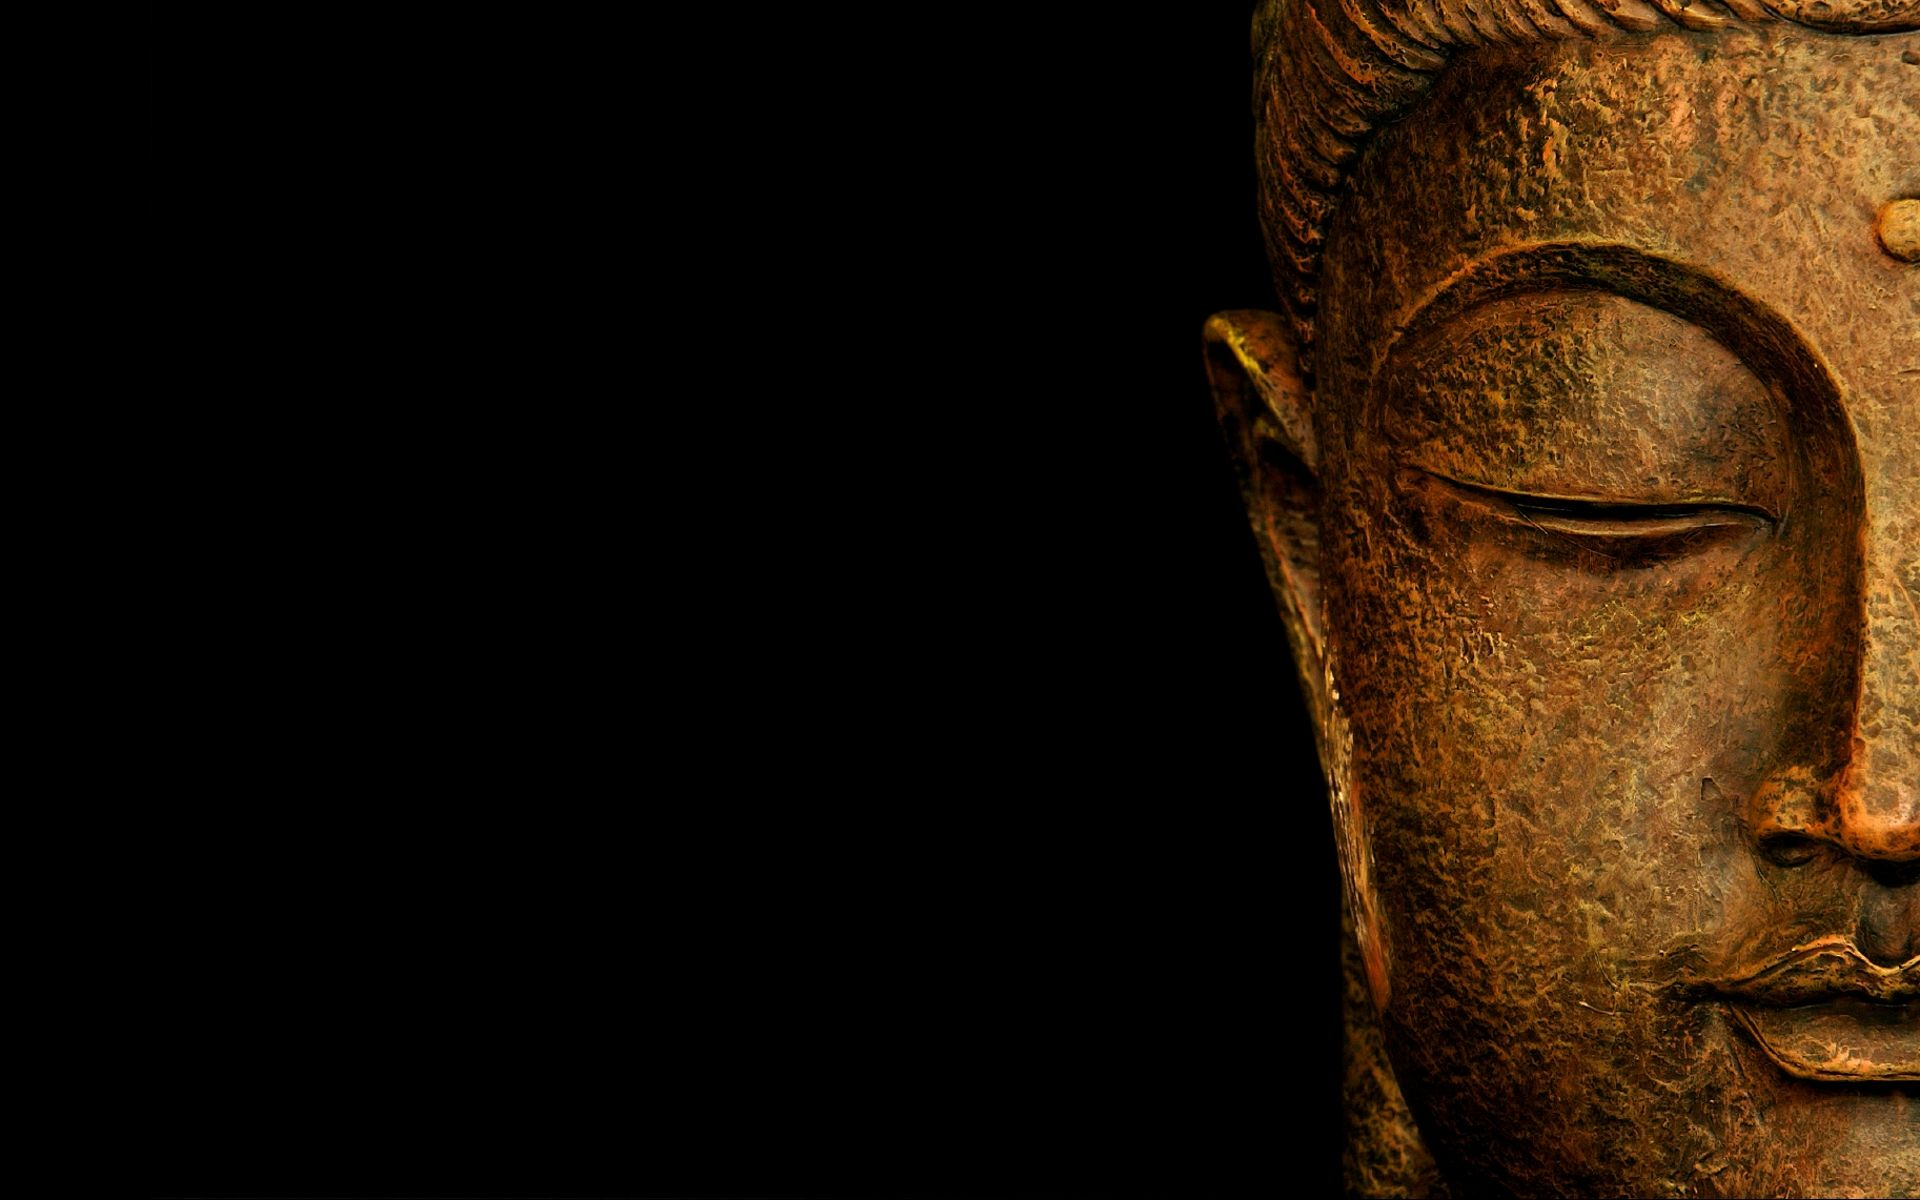 1920x1200 Buddh HD Wallpaper, Background Images